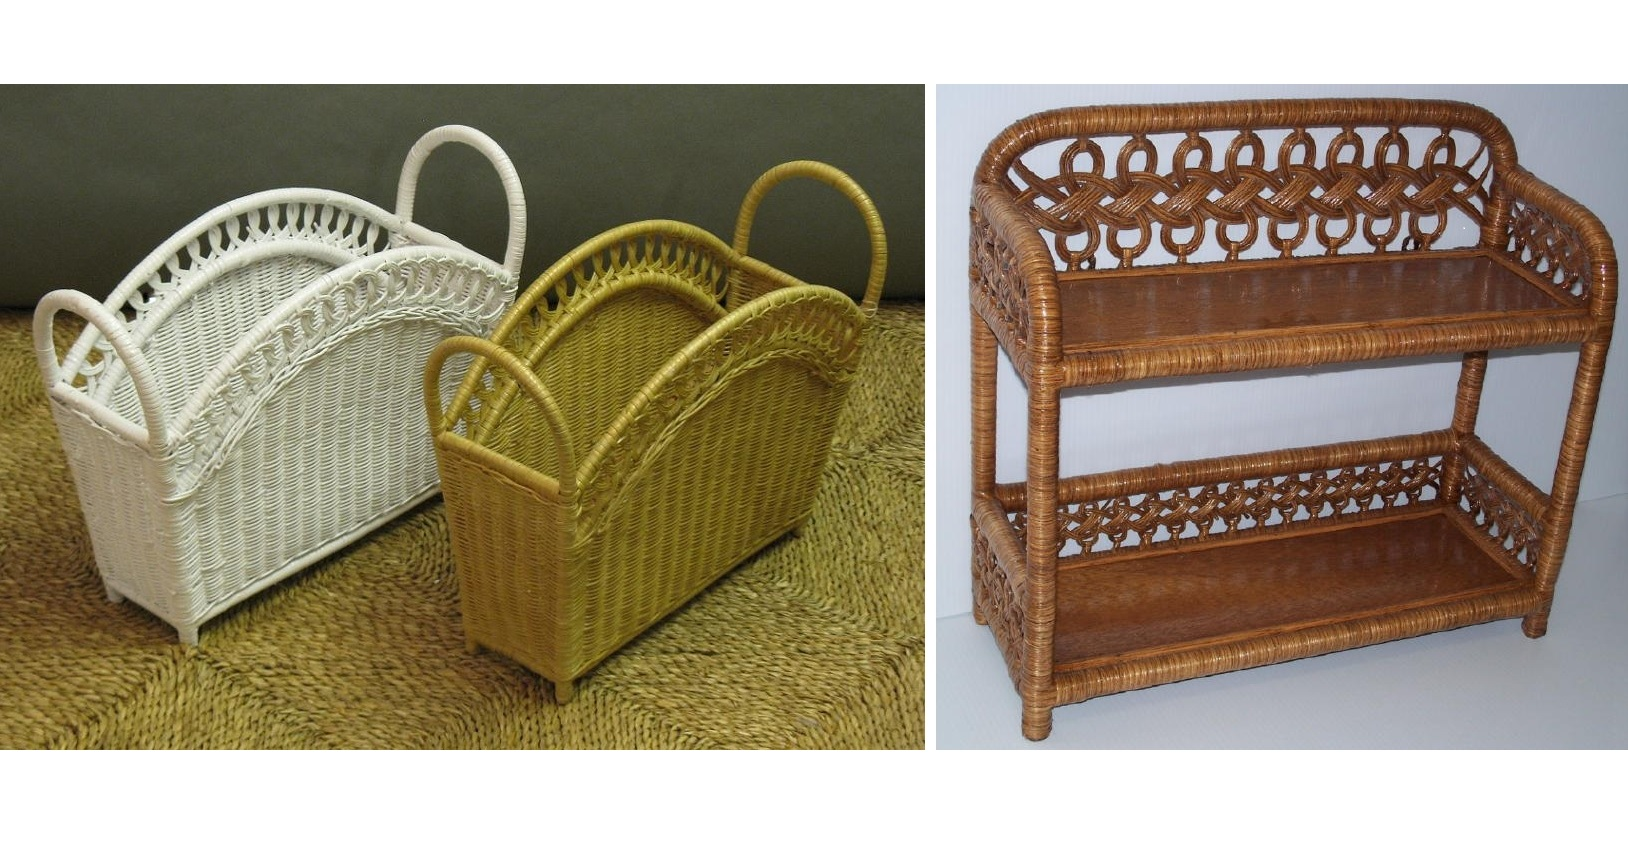 Wicker Decor & Accessories